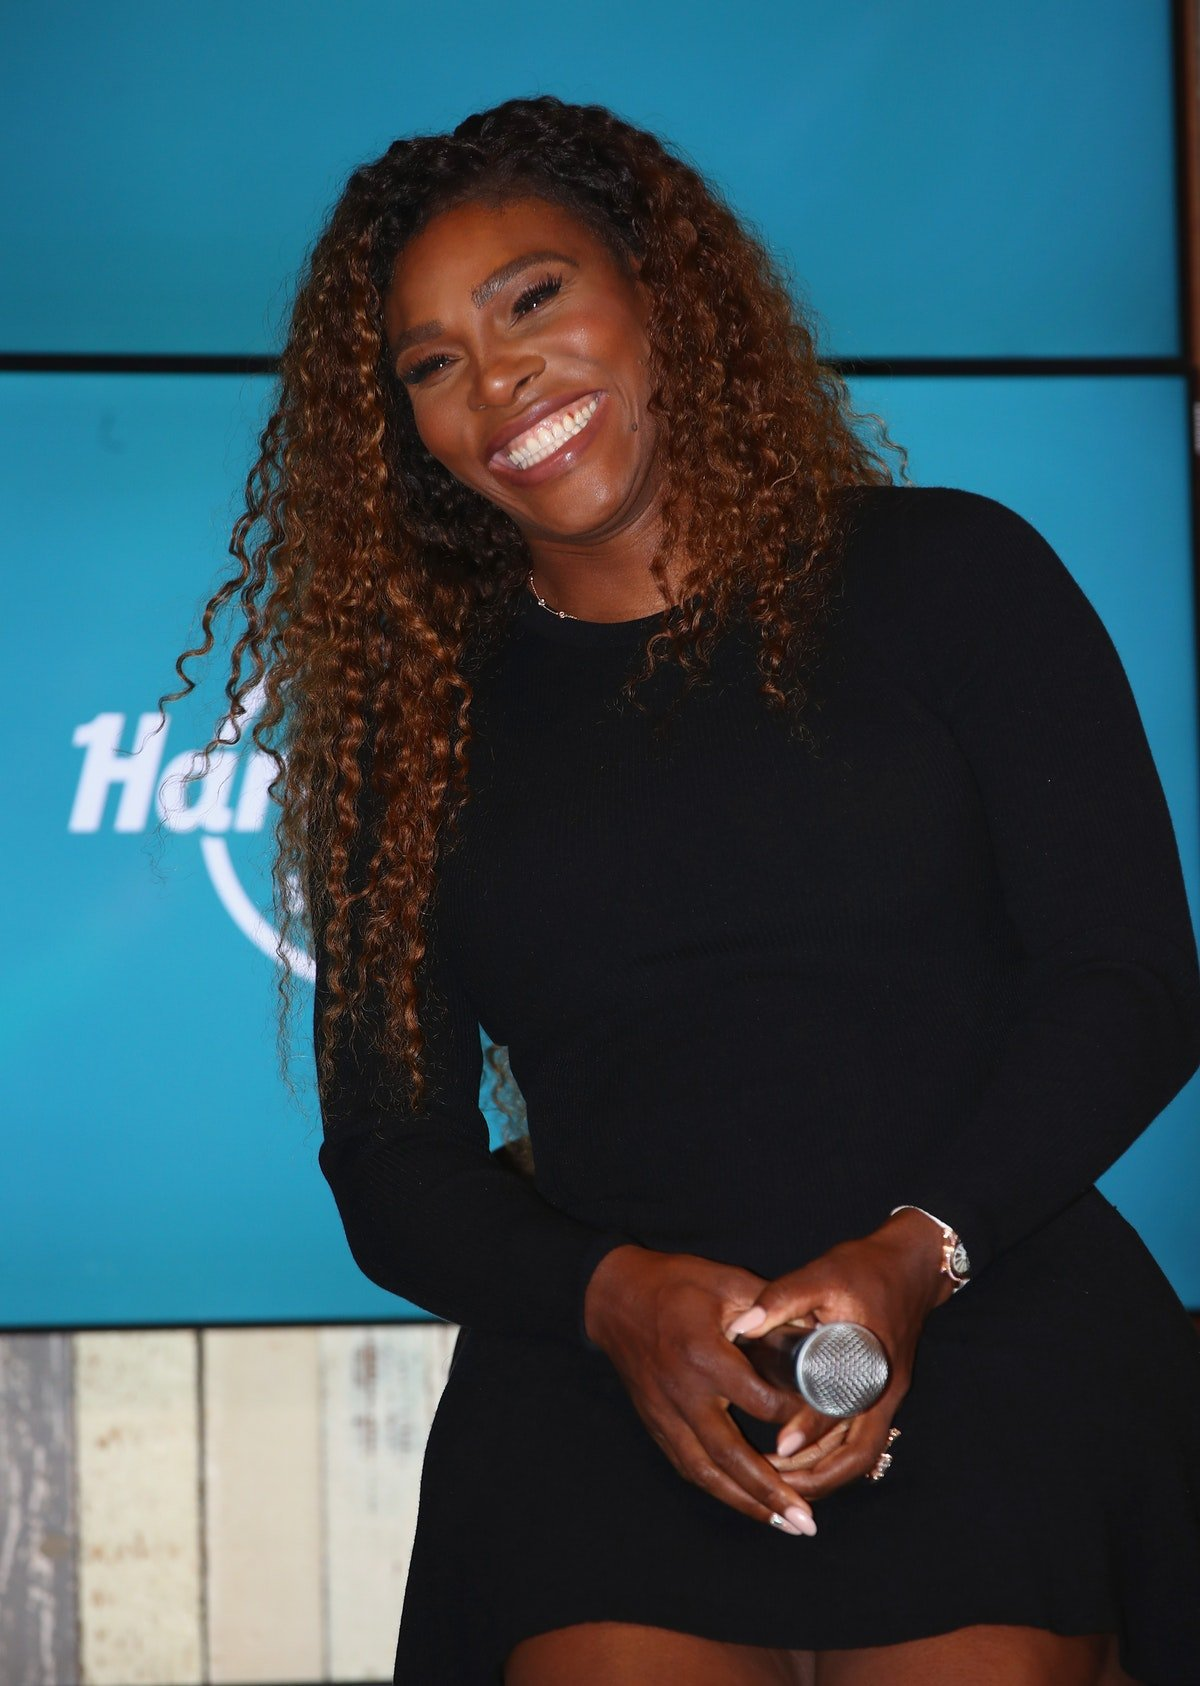 Serena Williams Said She Might Skip The Royal Wedding, But She Has A Very Good Excuse